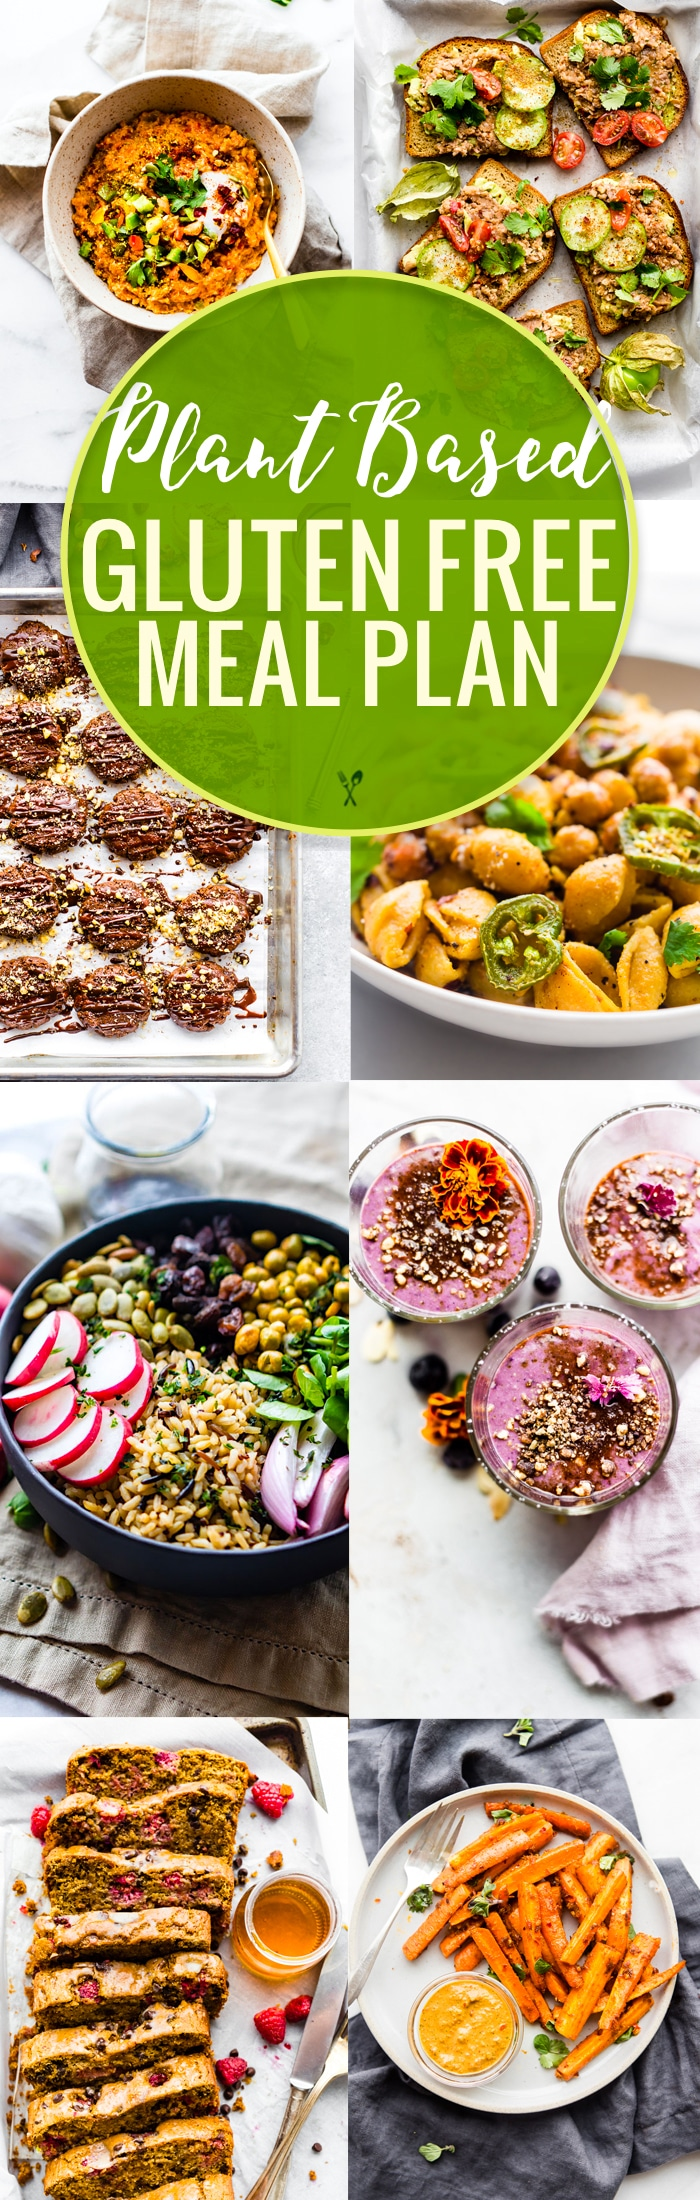 This plant based gluten-free meal plan includes plant based recipes for breakfast, lunches, dinners, snacks, and desserts. They are all nutritious, wholesome, and easy gluten-free meals that are plant based, and many of these are vegan recipes, too. These healthy meals will fuel your body in a delicious way!